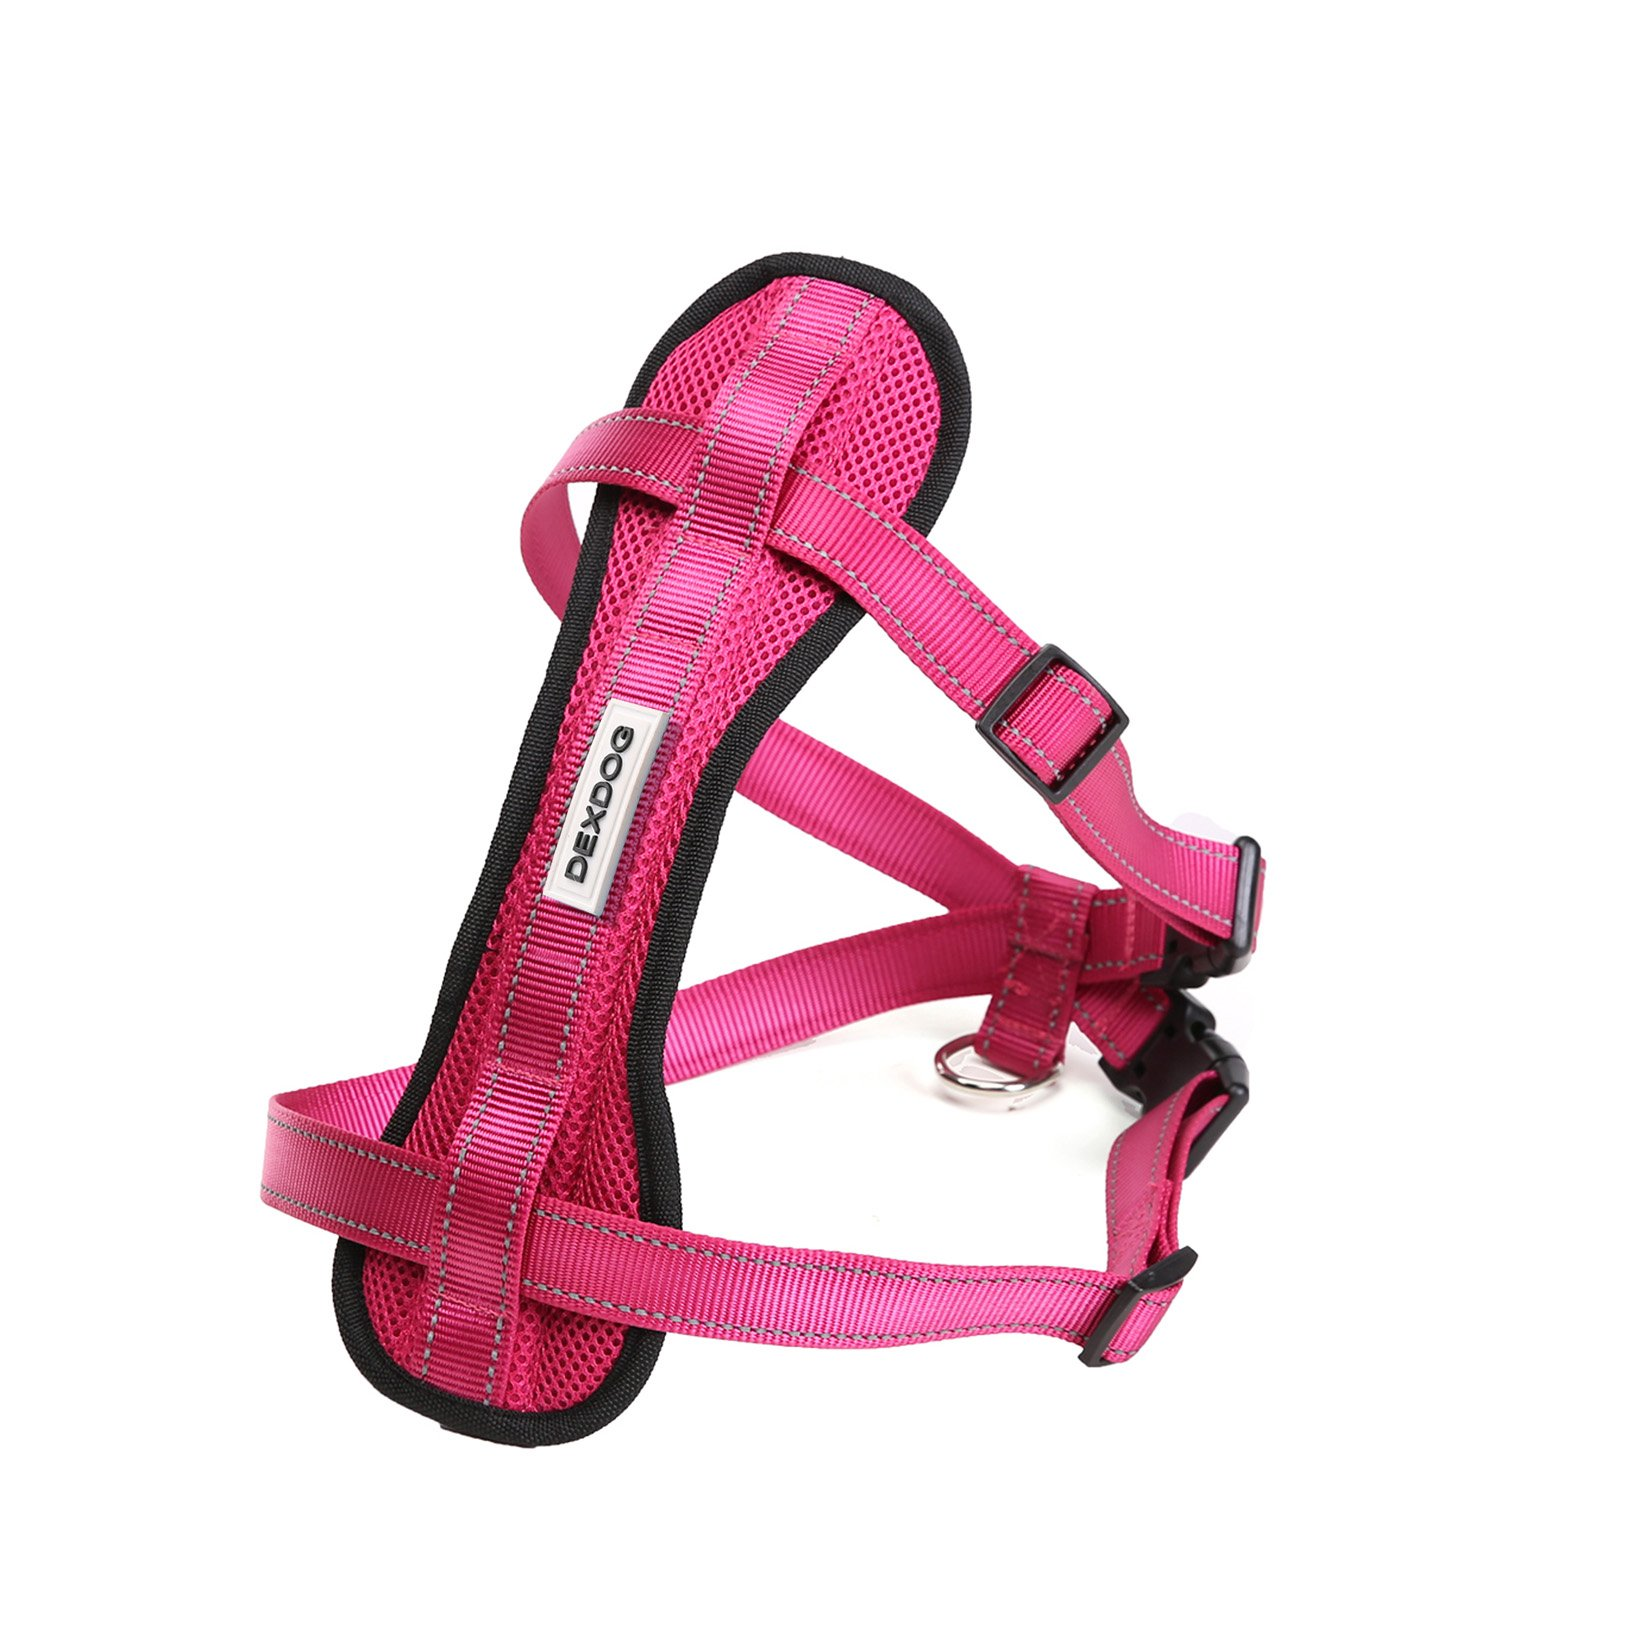 DEXDOG Chest Plate Harness Auto Car Safety Harness | Adjustable Straps, Reflective, Padded for Comfort | Best Dog Harness Small Large Dogs (Pink, XX-Small) by DEXDOG